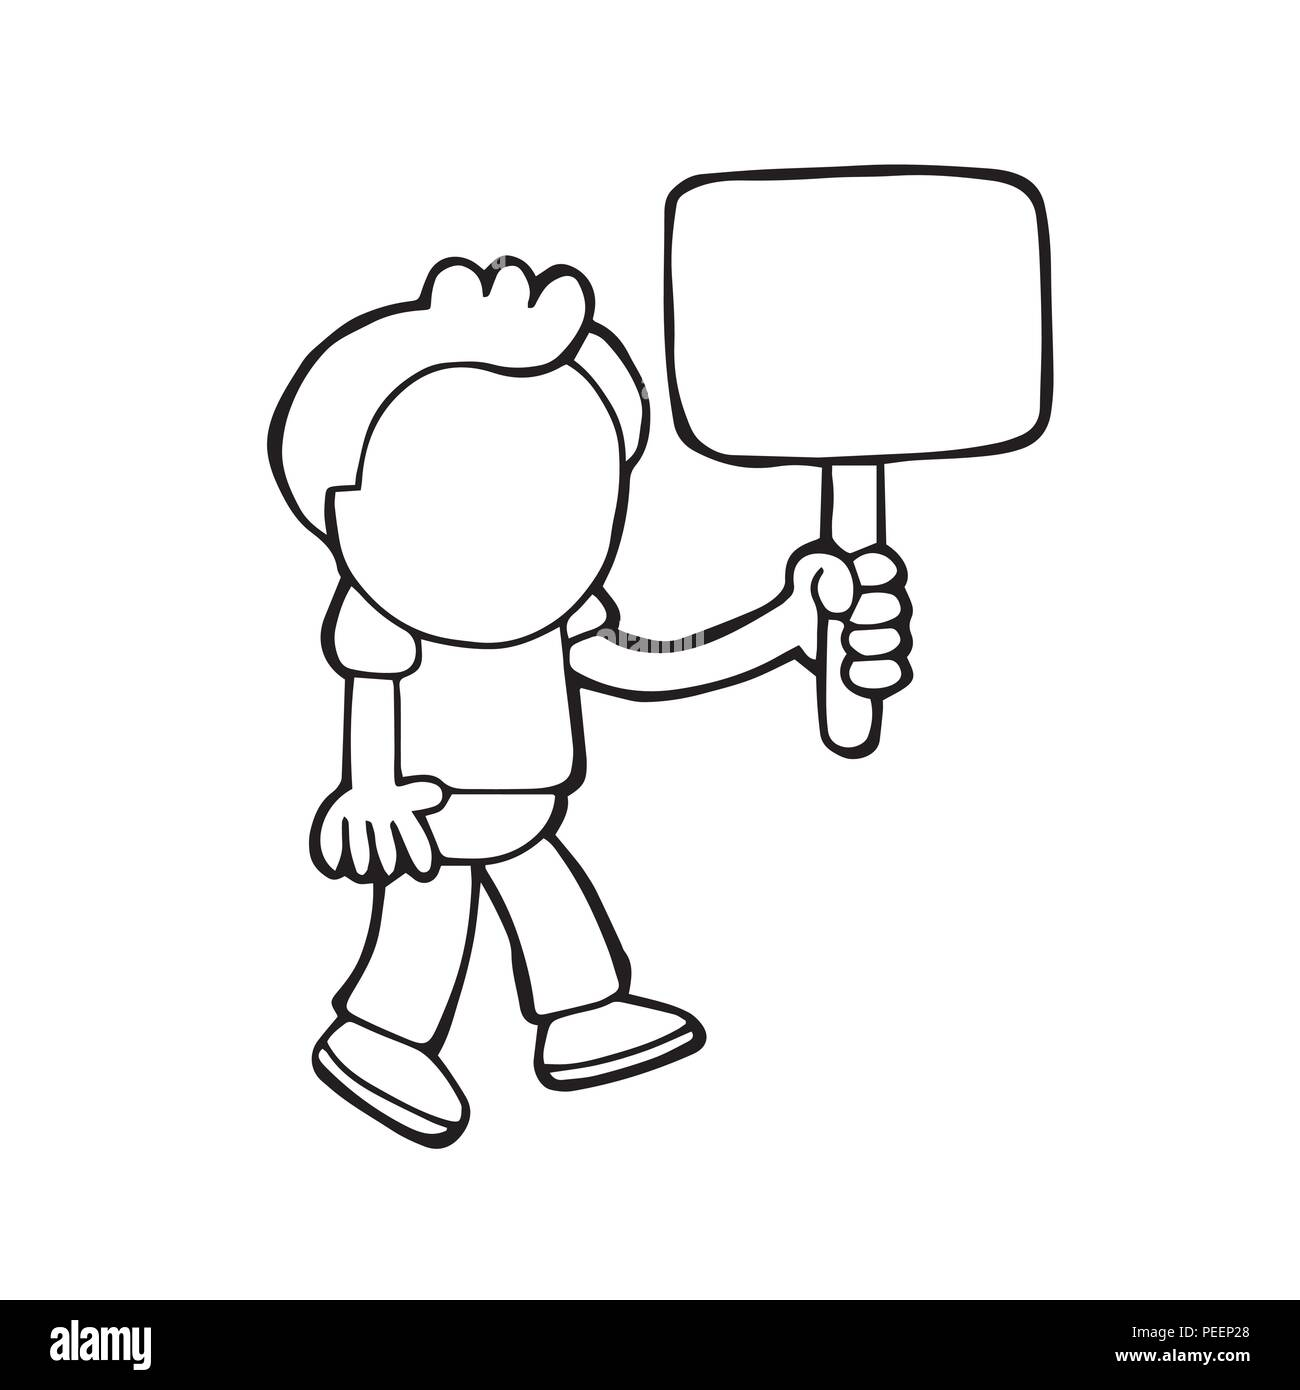 Vector hand-drawn cartoon illustration of man walking holding blank placard. - Stock Vector